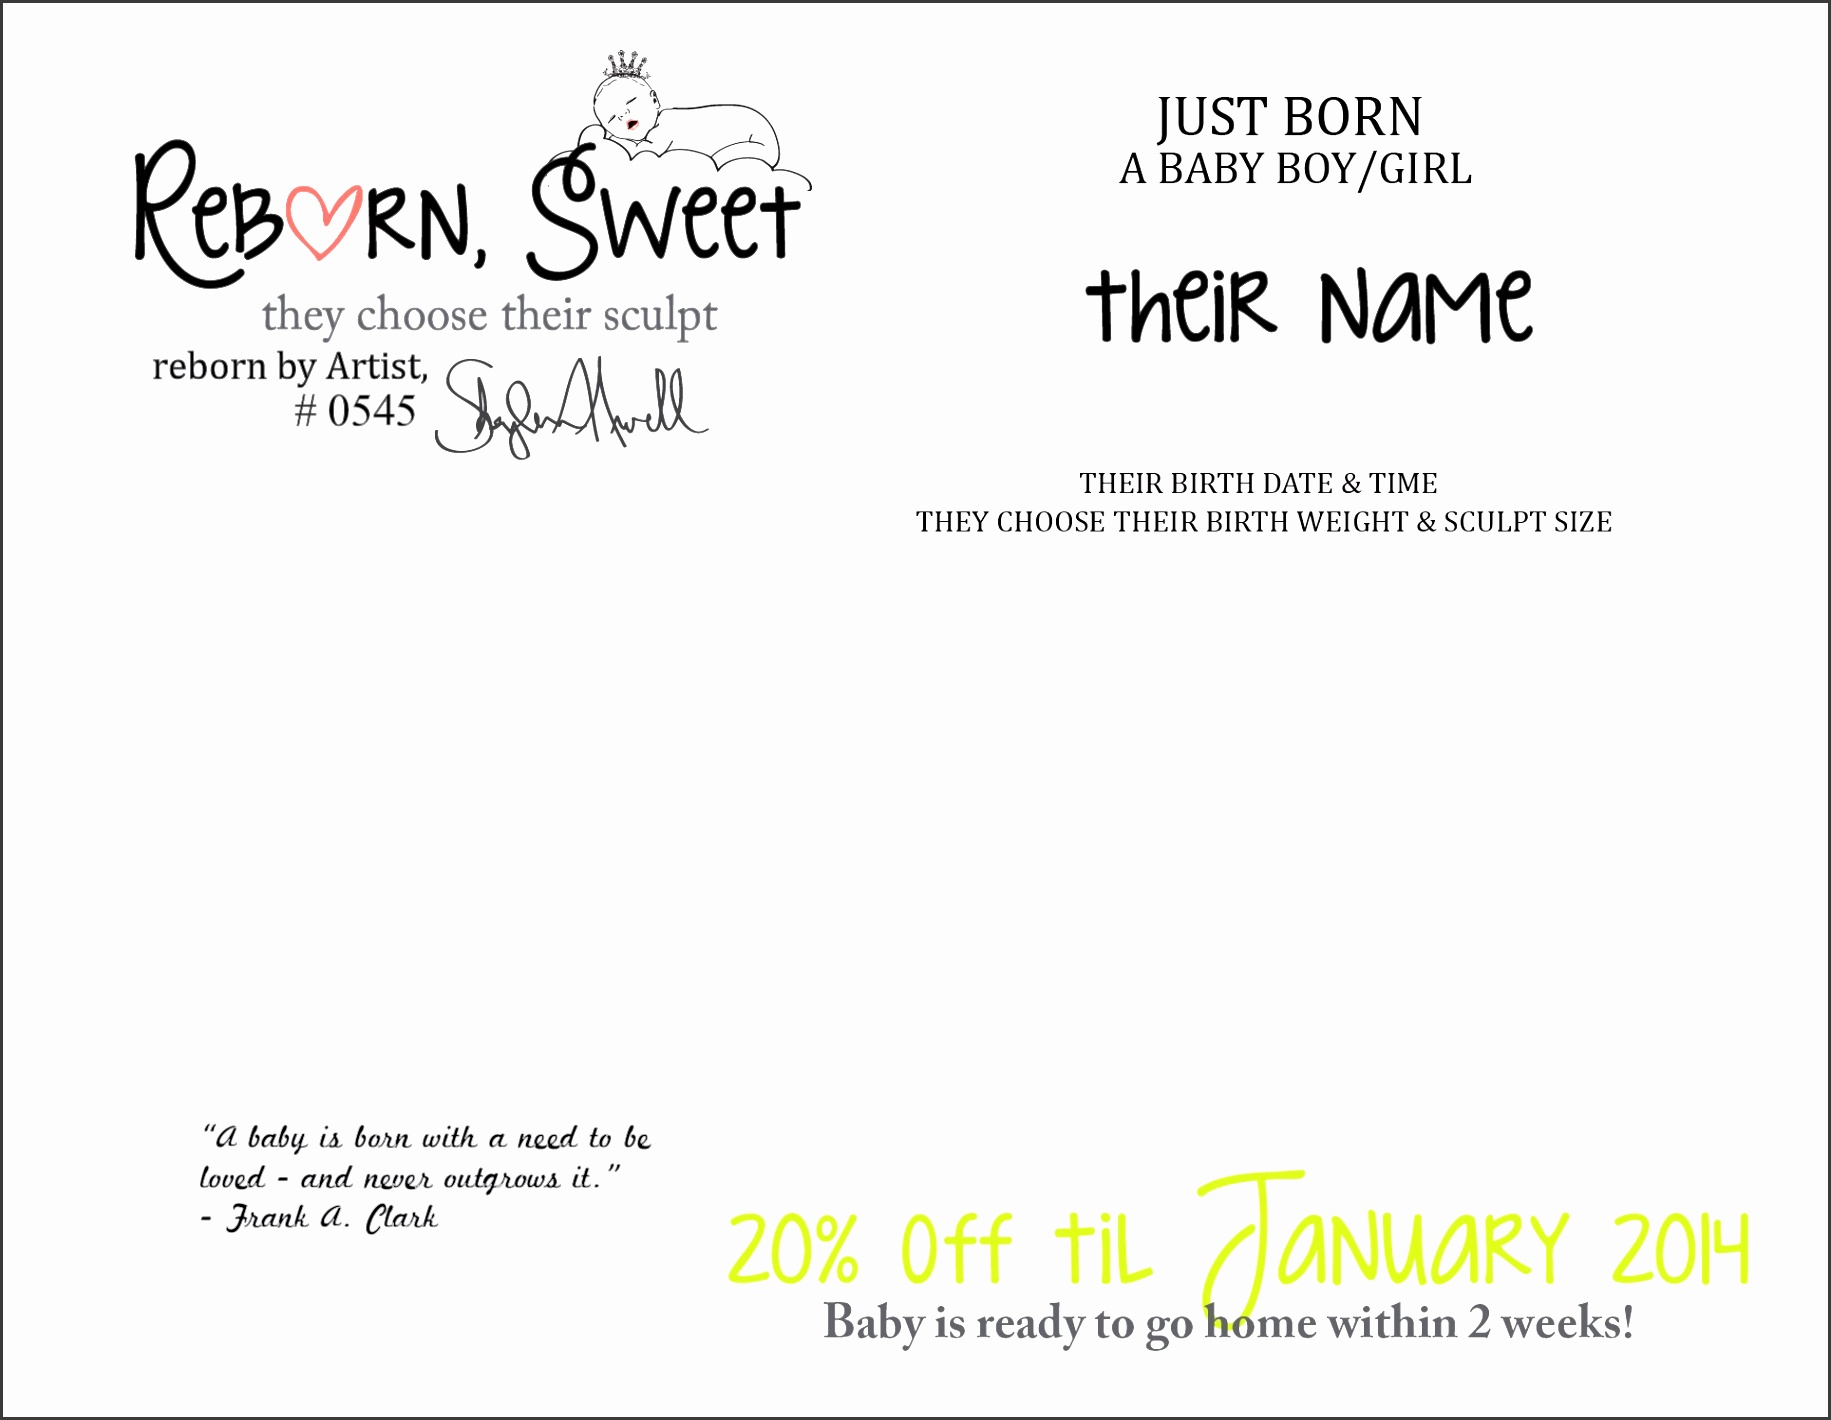 baby doll birth certificate template - 5 baby birth certificate template sampletemplatess